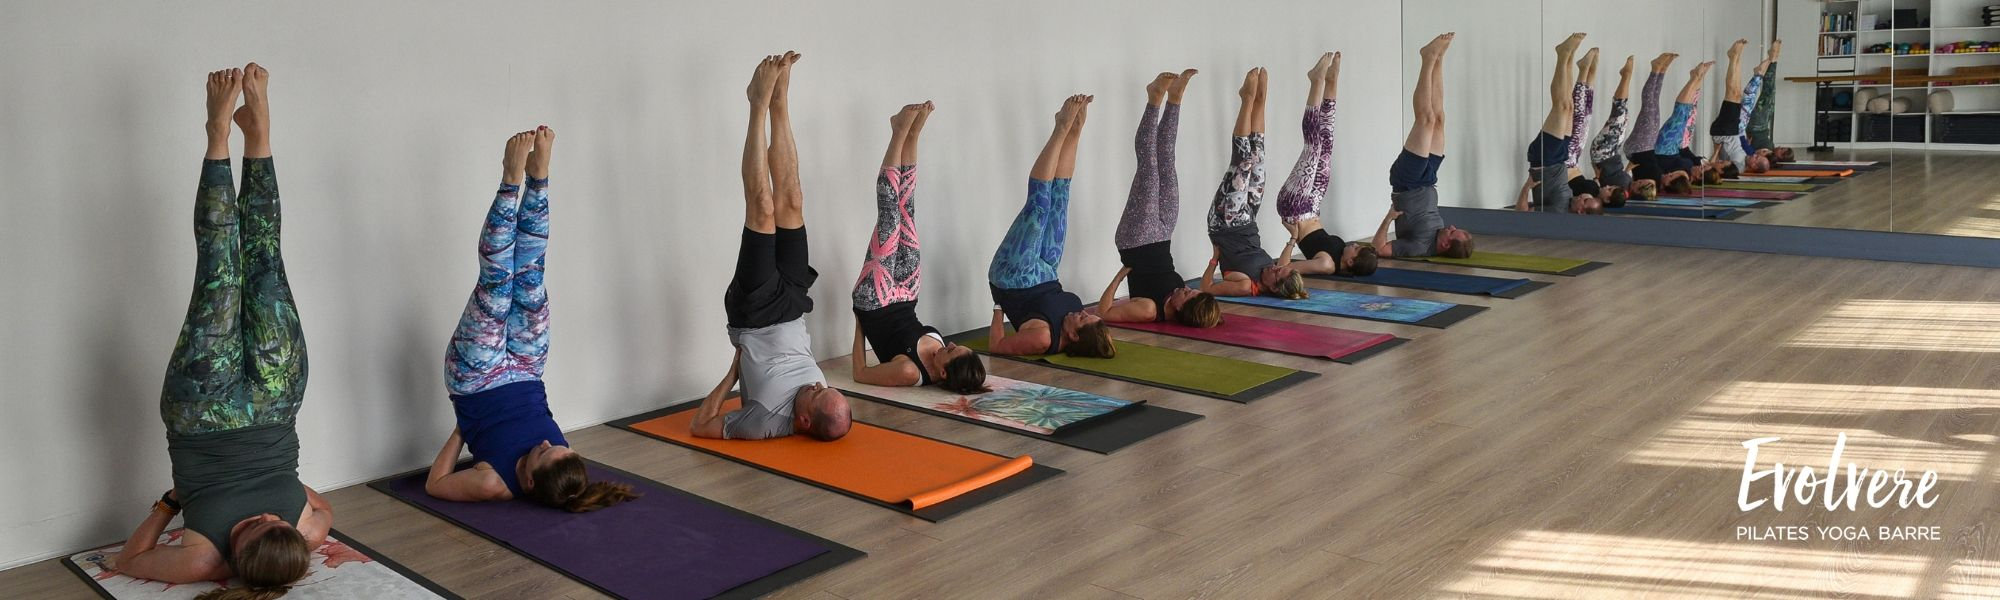 Yoga in Lane Cove for everyone and every body shape and size